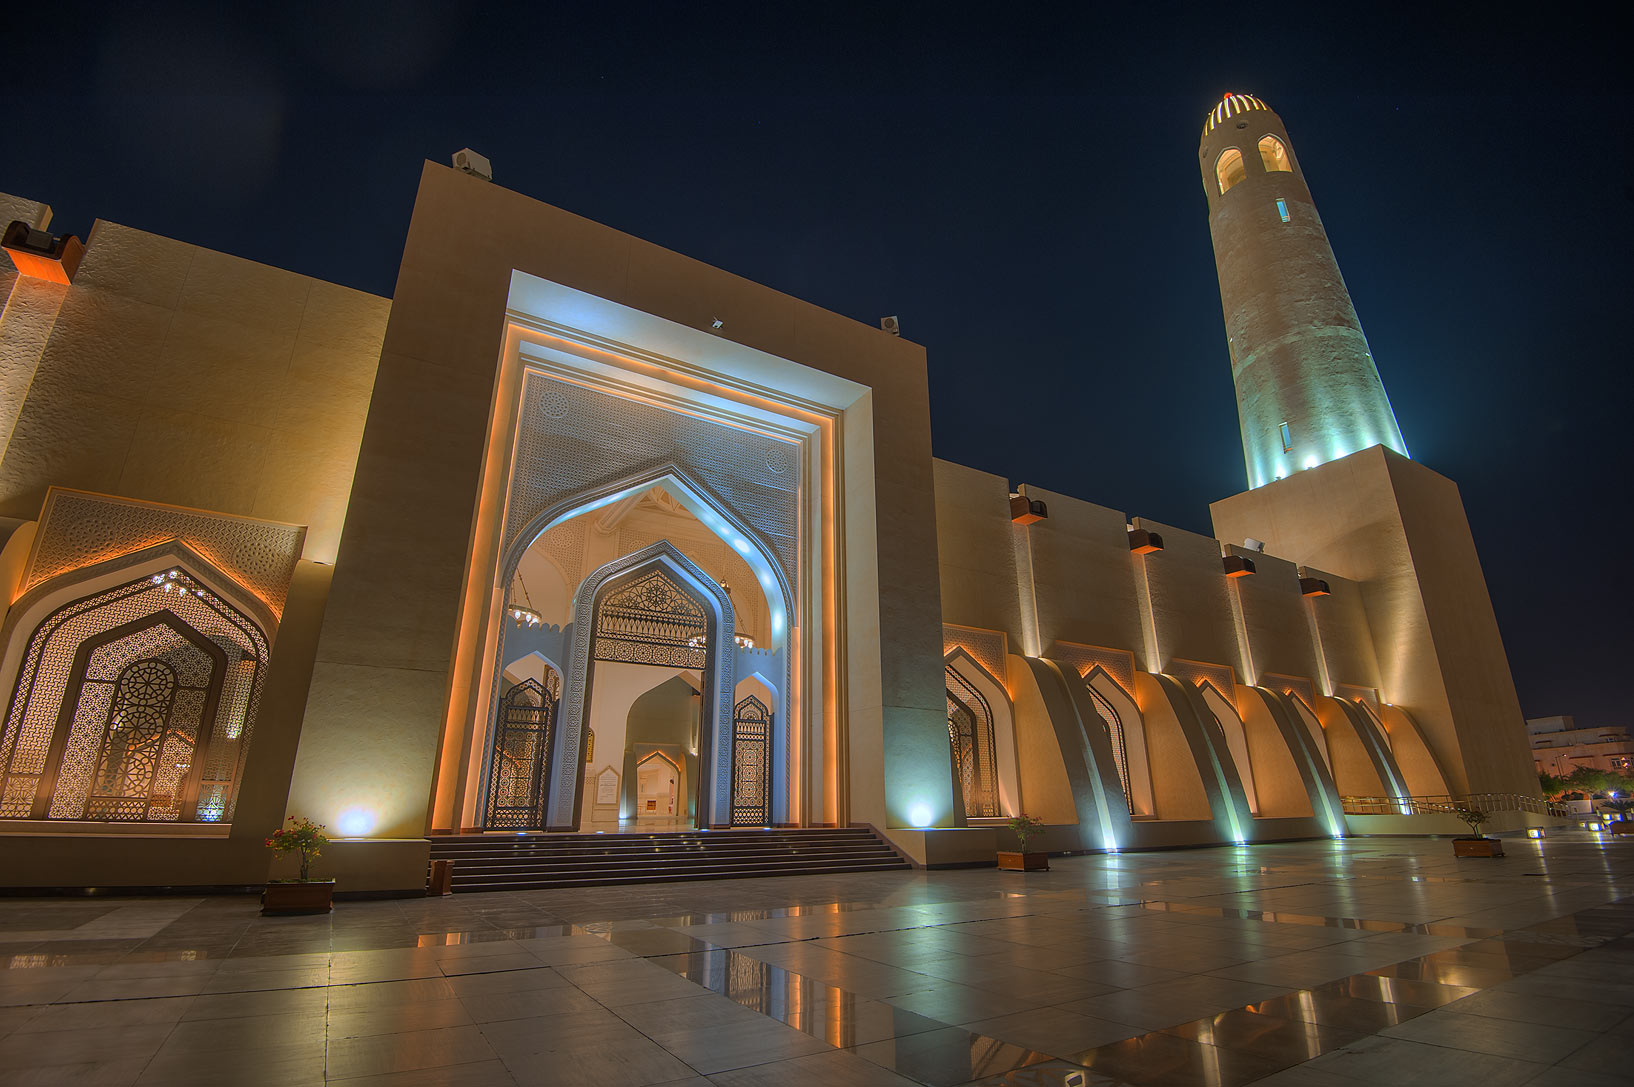 Women's gate of State Mosque (Sheikh Muhammad Ibn Abdul Wahhab Mosque). Doha, Qatar